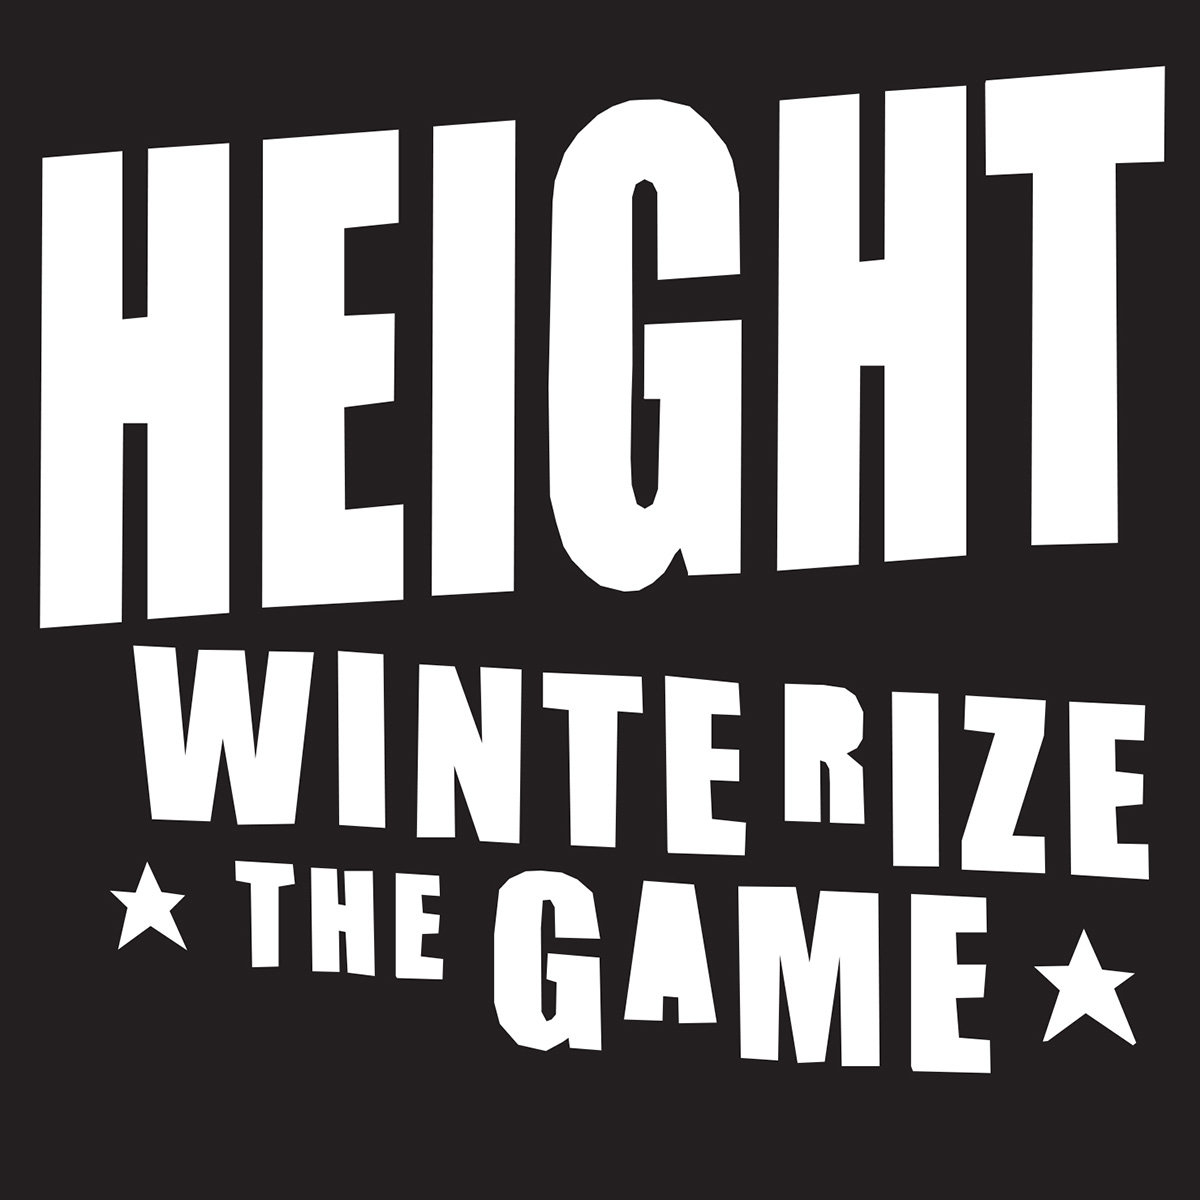 Winterize The Game (2007)